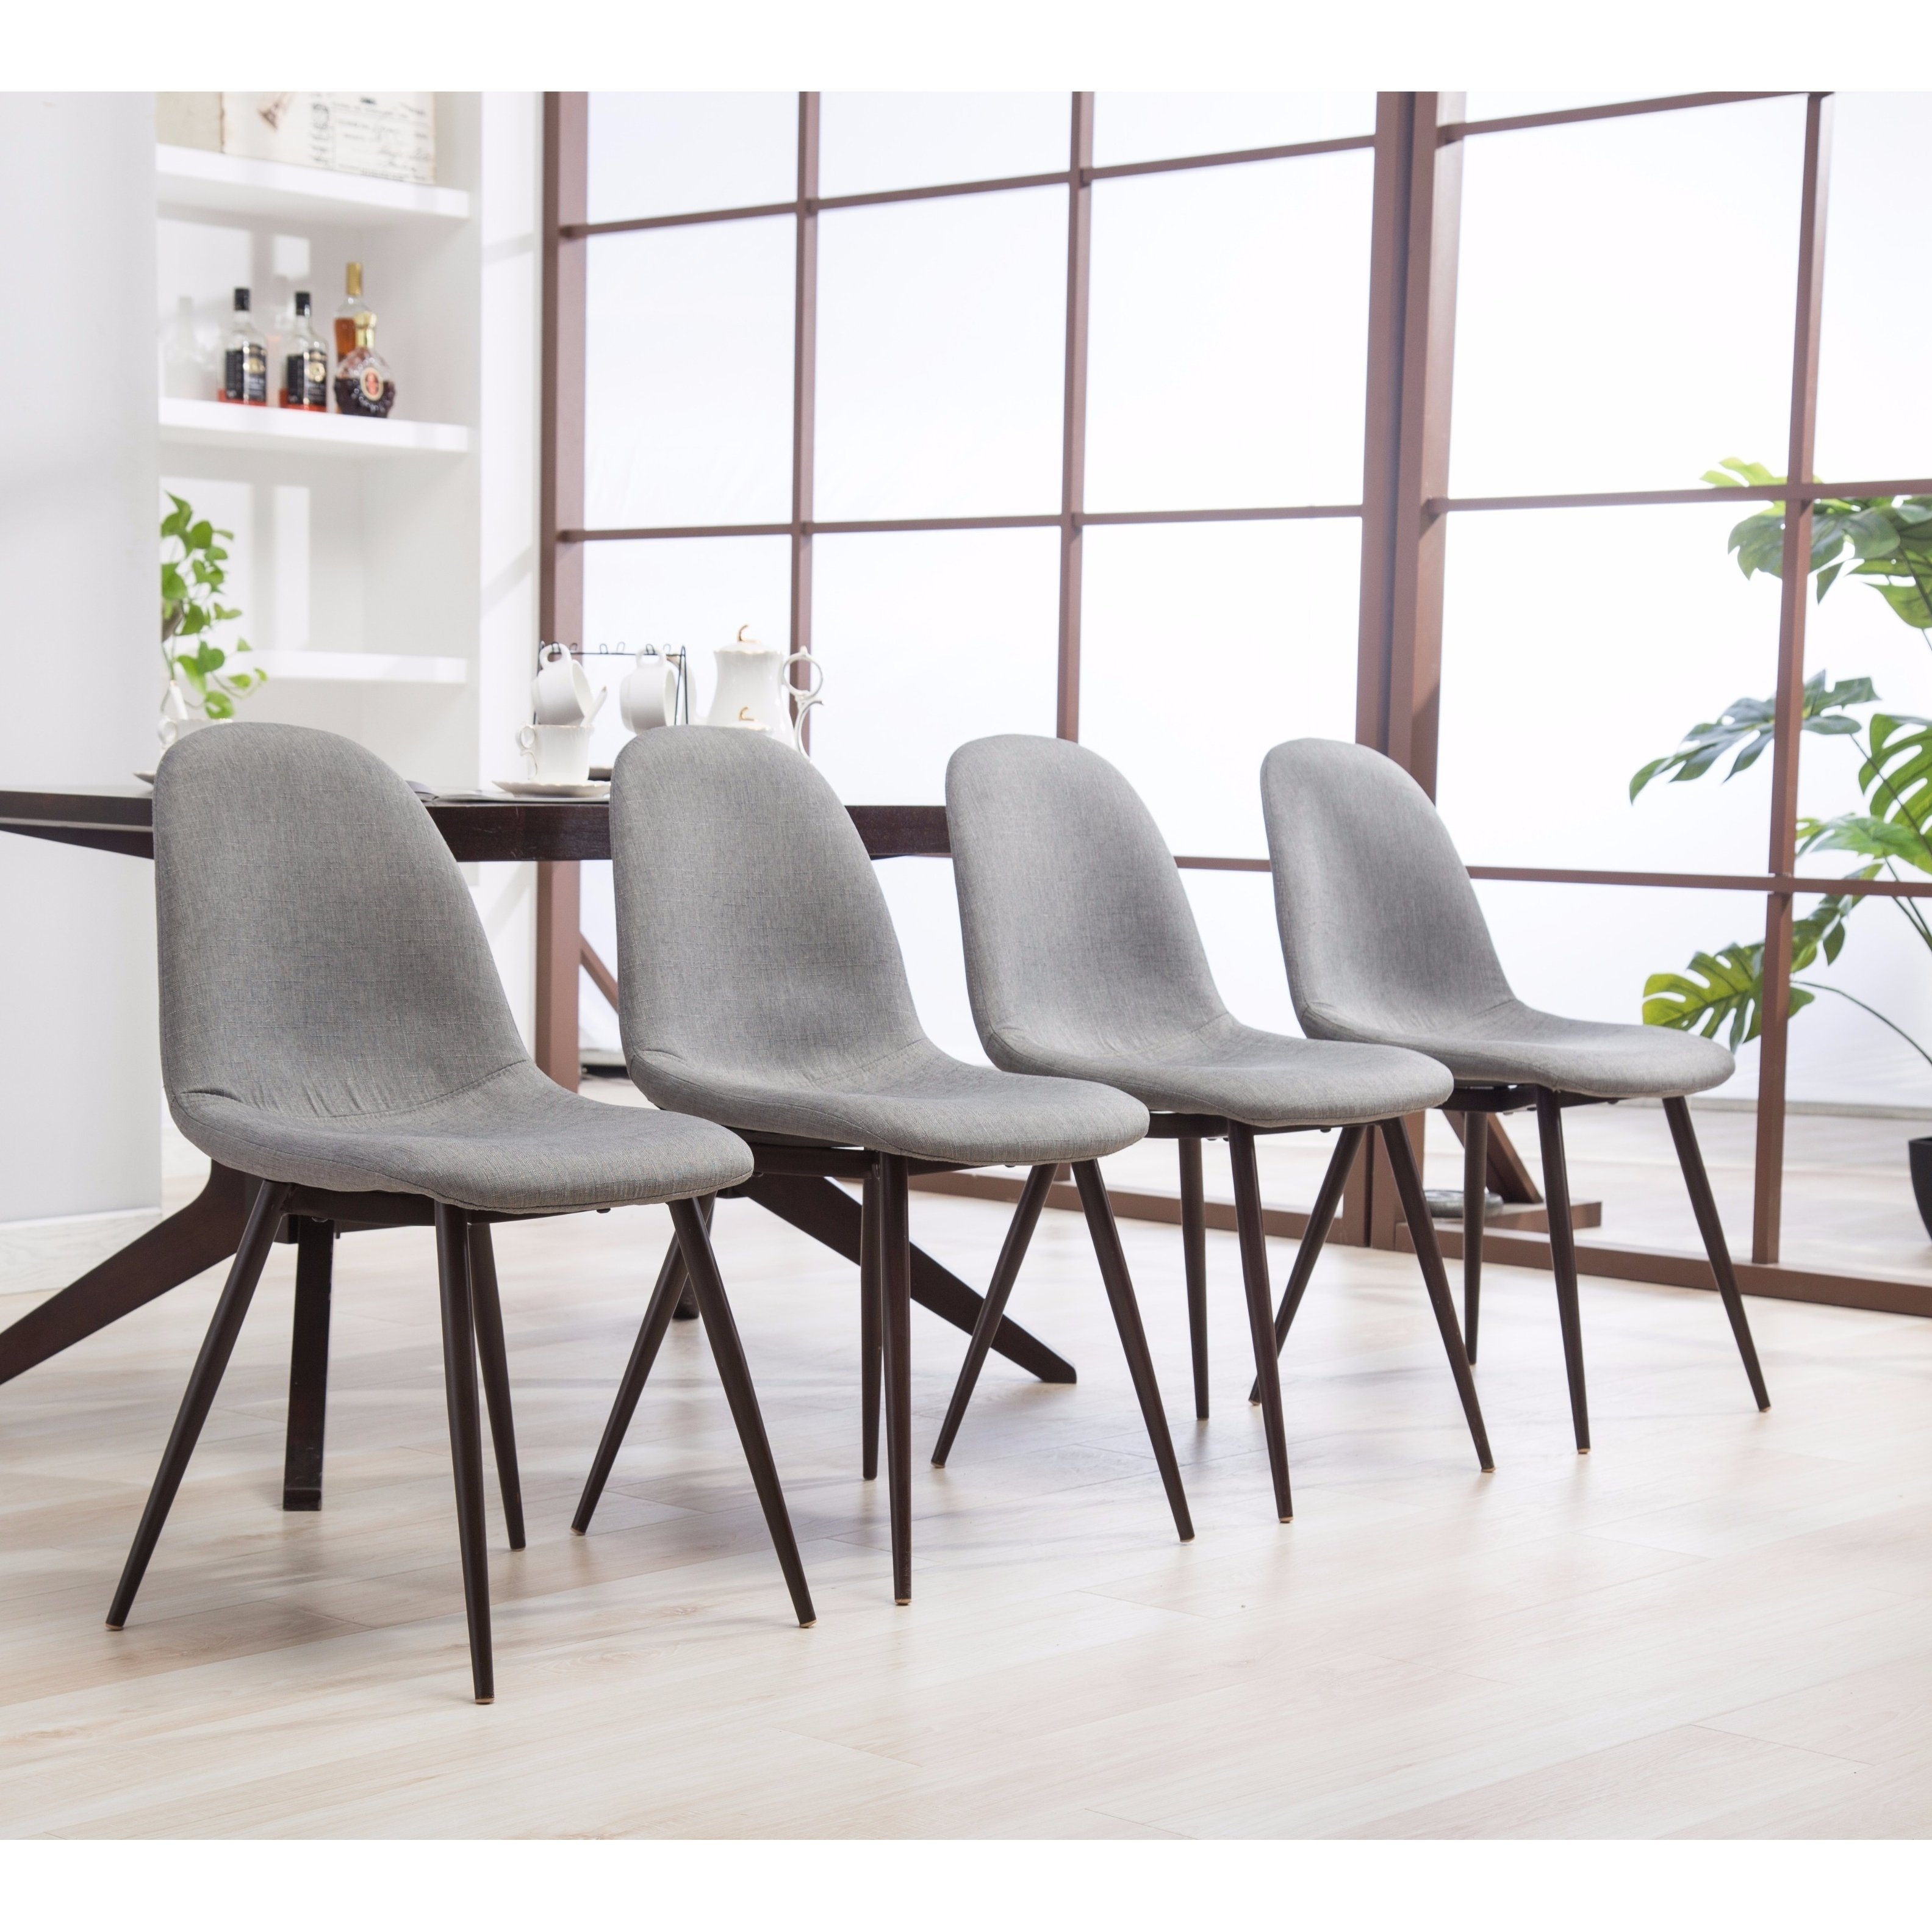 Shop Lassan Modern Contemporary Blue Fabric Dining Chairs, Set Of 4 With Latest Caden 7 Piece Dining Sets With Upholstered Side Chair (View 10 of 20)